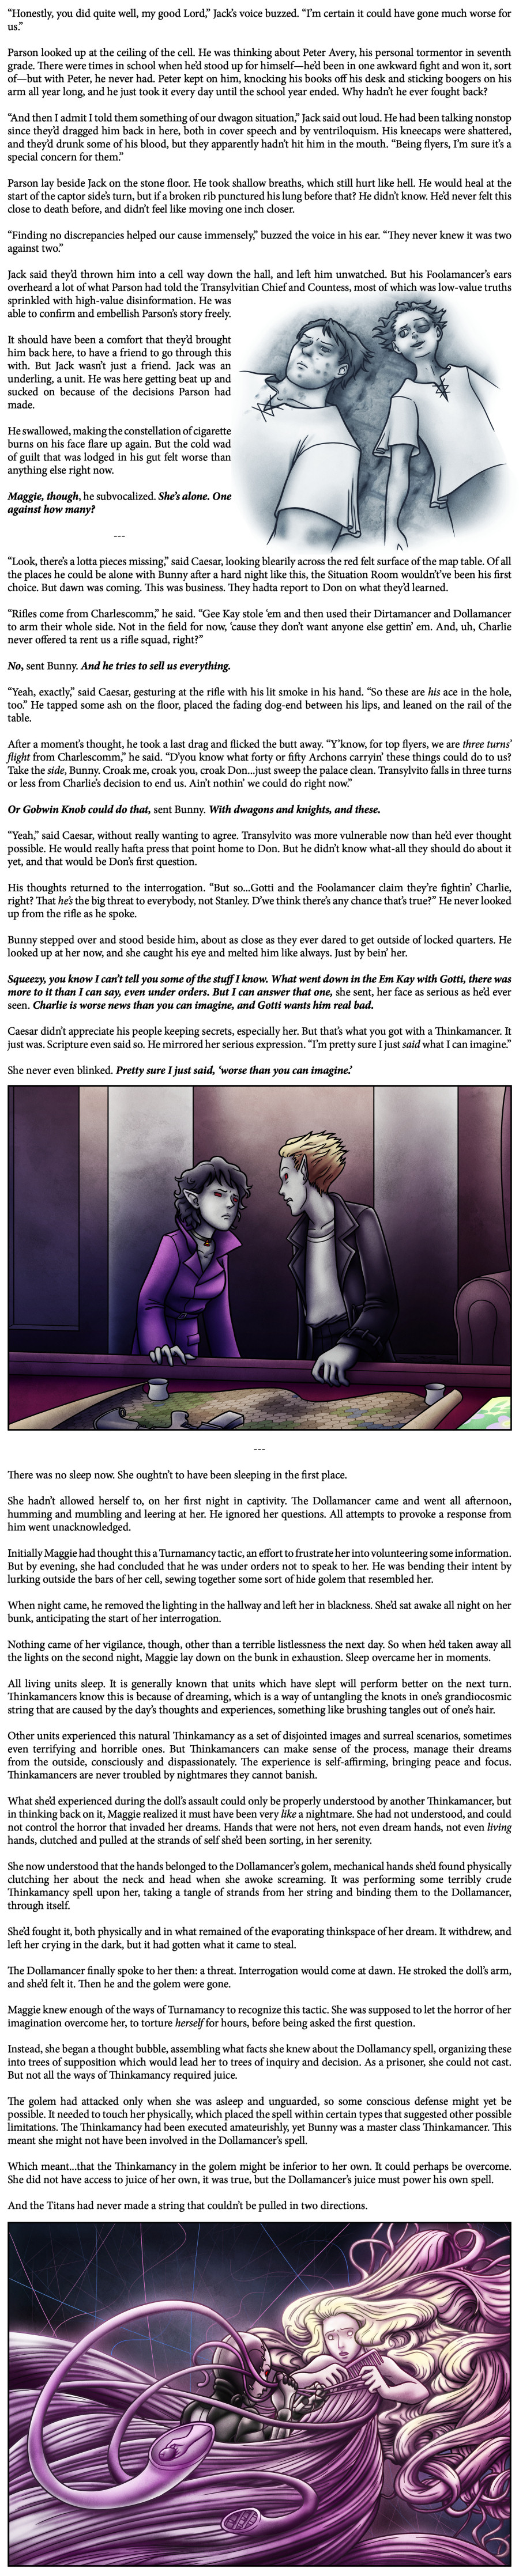 Comic - Book 4 - Page 6 - Prologue 6